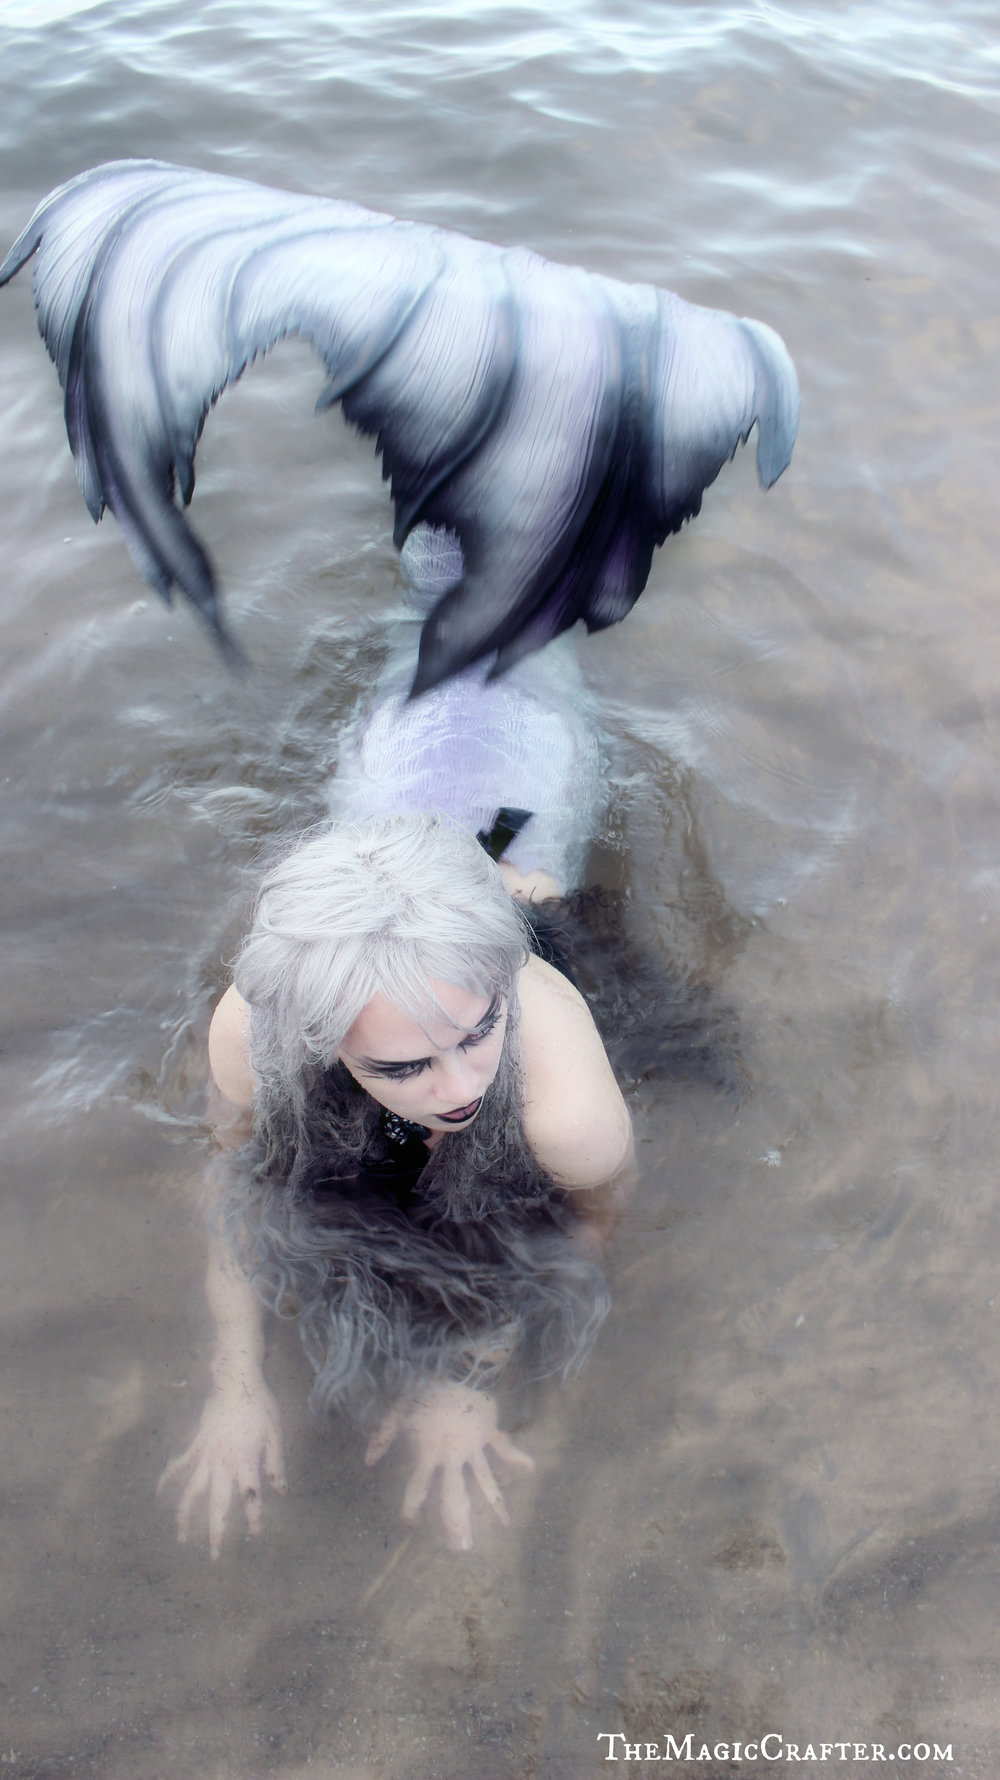 Mermaid Images: Pictures of a creepy Goth mermaid in the water. This is Mermaid Phantom, one of Michigan's only real live mermaids. She is a professional mermaid who lives and works in the Traverse City area. Despite her odd looks, she is actually quite great with children and does not usually dress so scary. :)